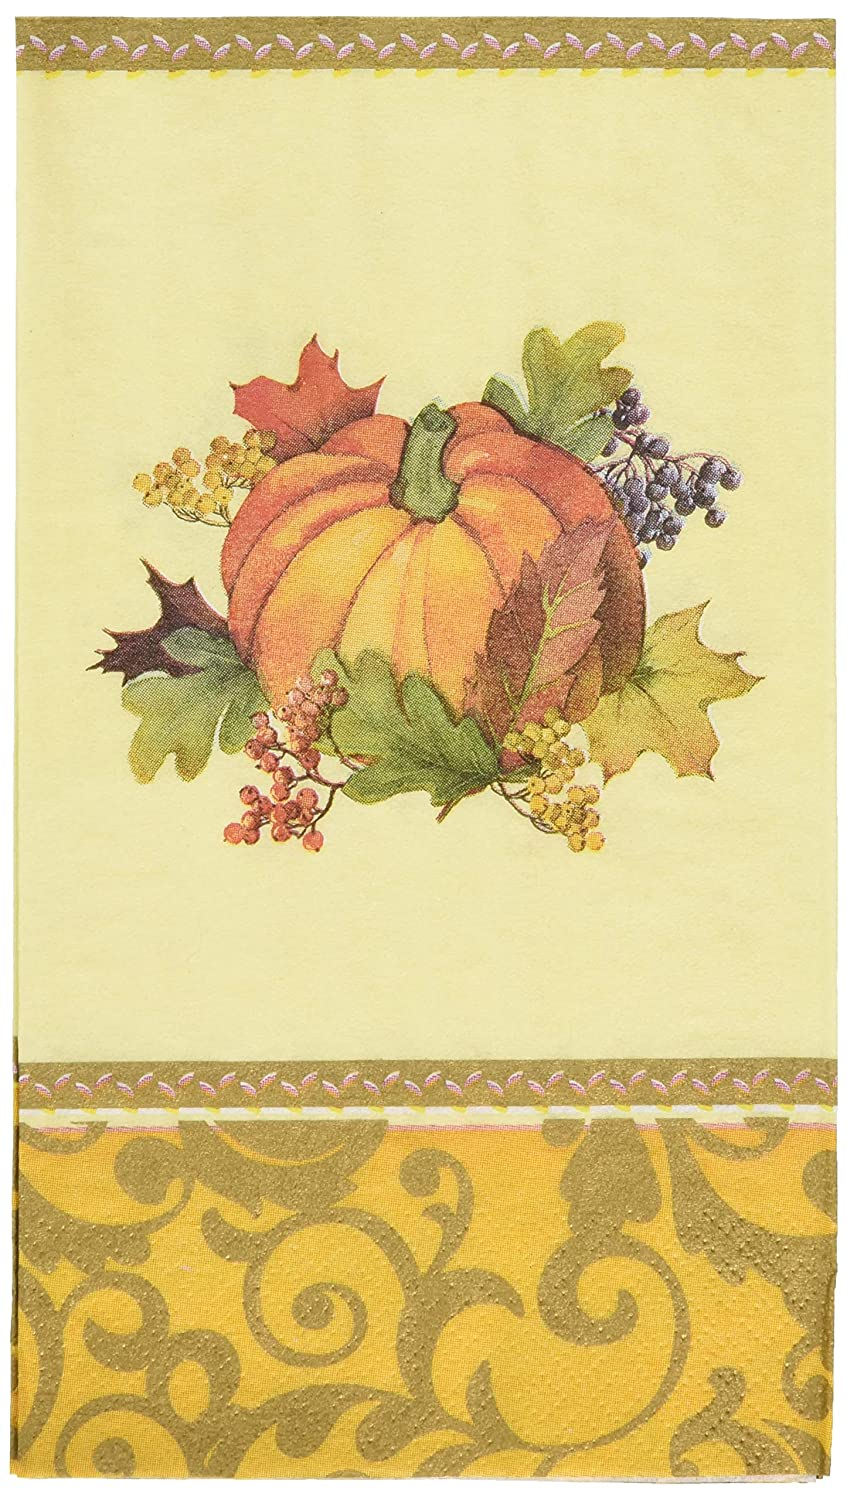 192 Ct. Amscan Bountiful Thanksgiving Multi Colored Paper Guest Towels Party Tableware